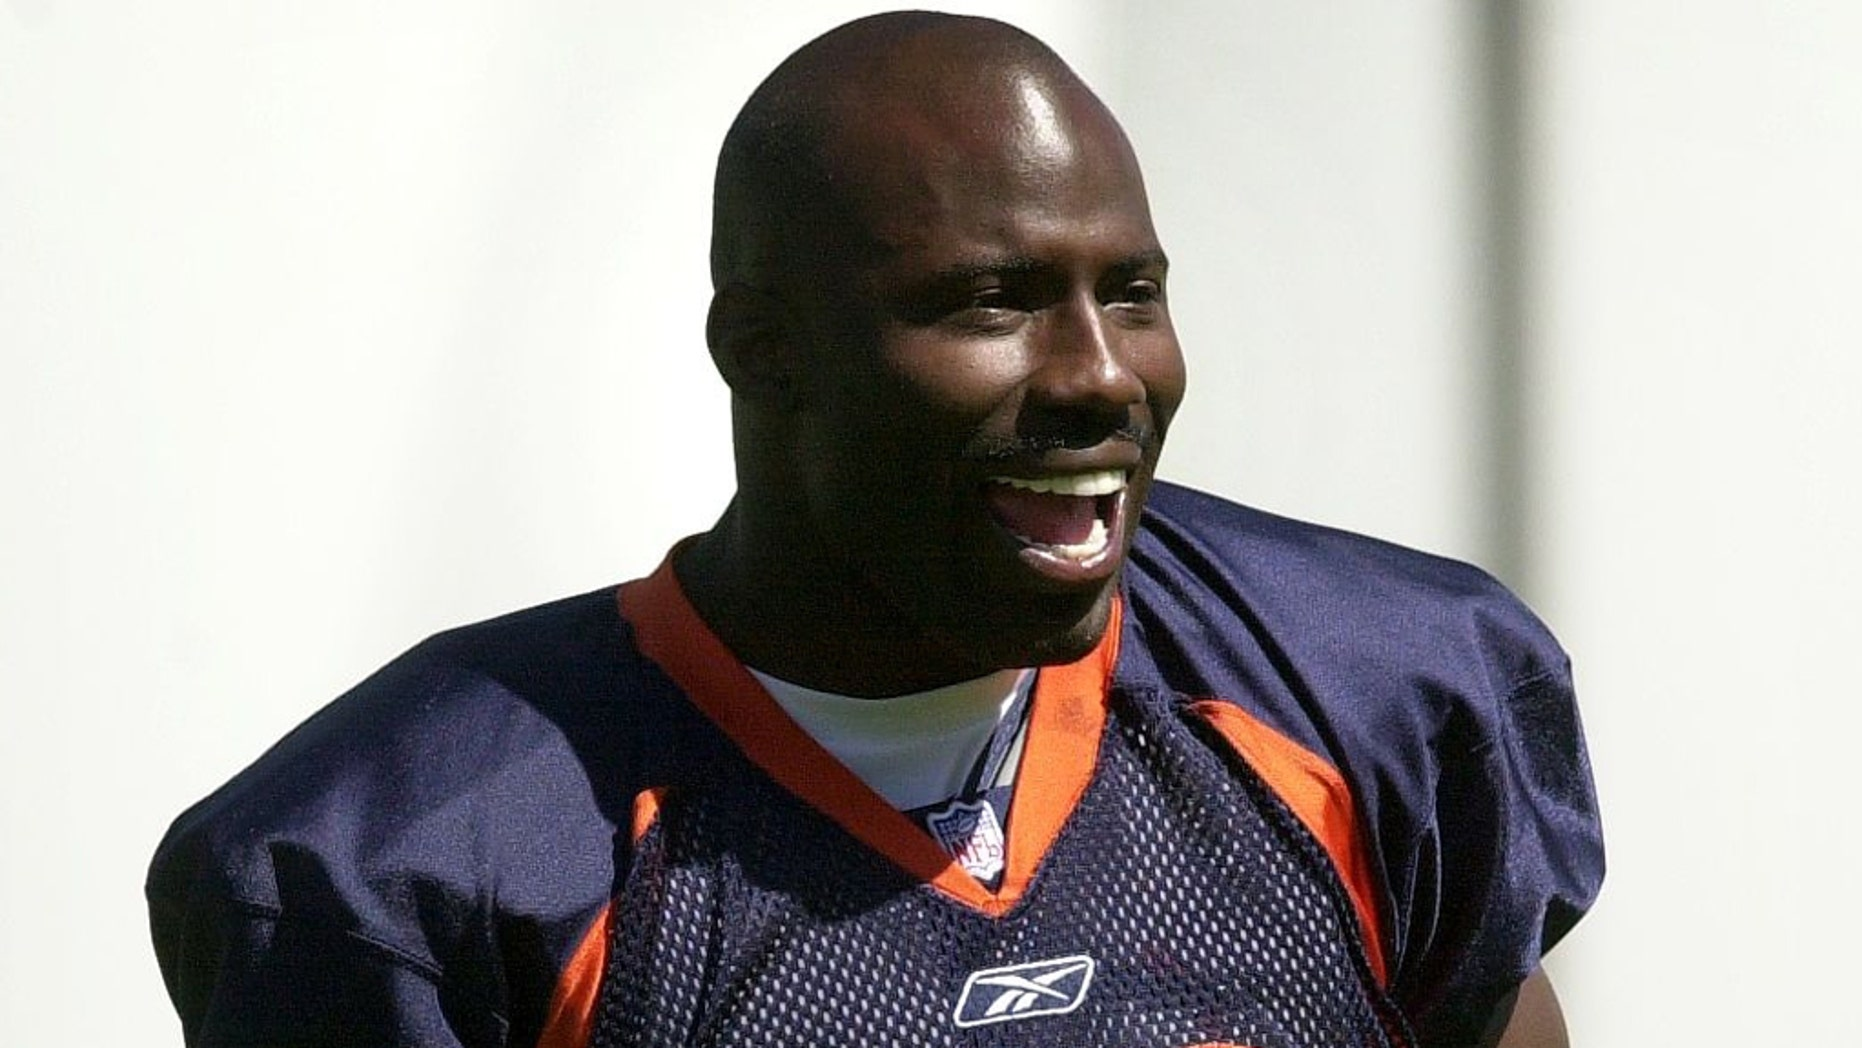 NFL Hall of Famer Terrell Davis opens up about overcoming the odds: 'I was 13 staring down the end of a shotgun'